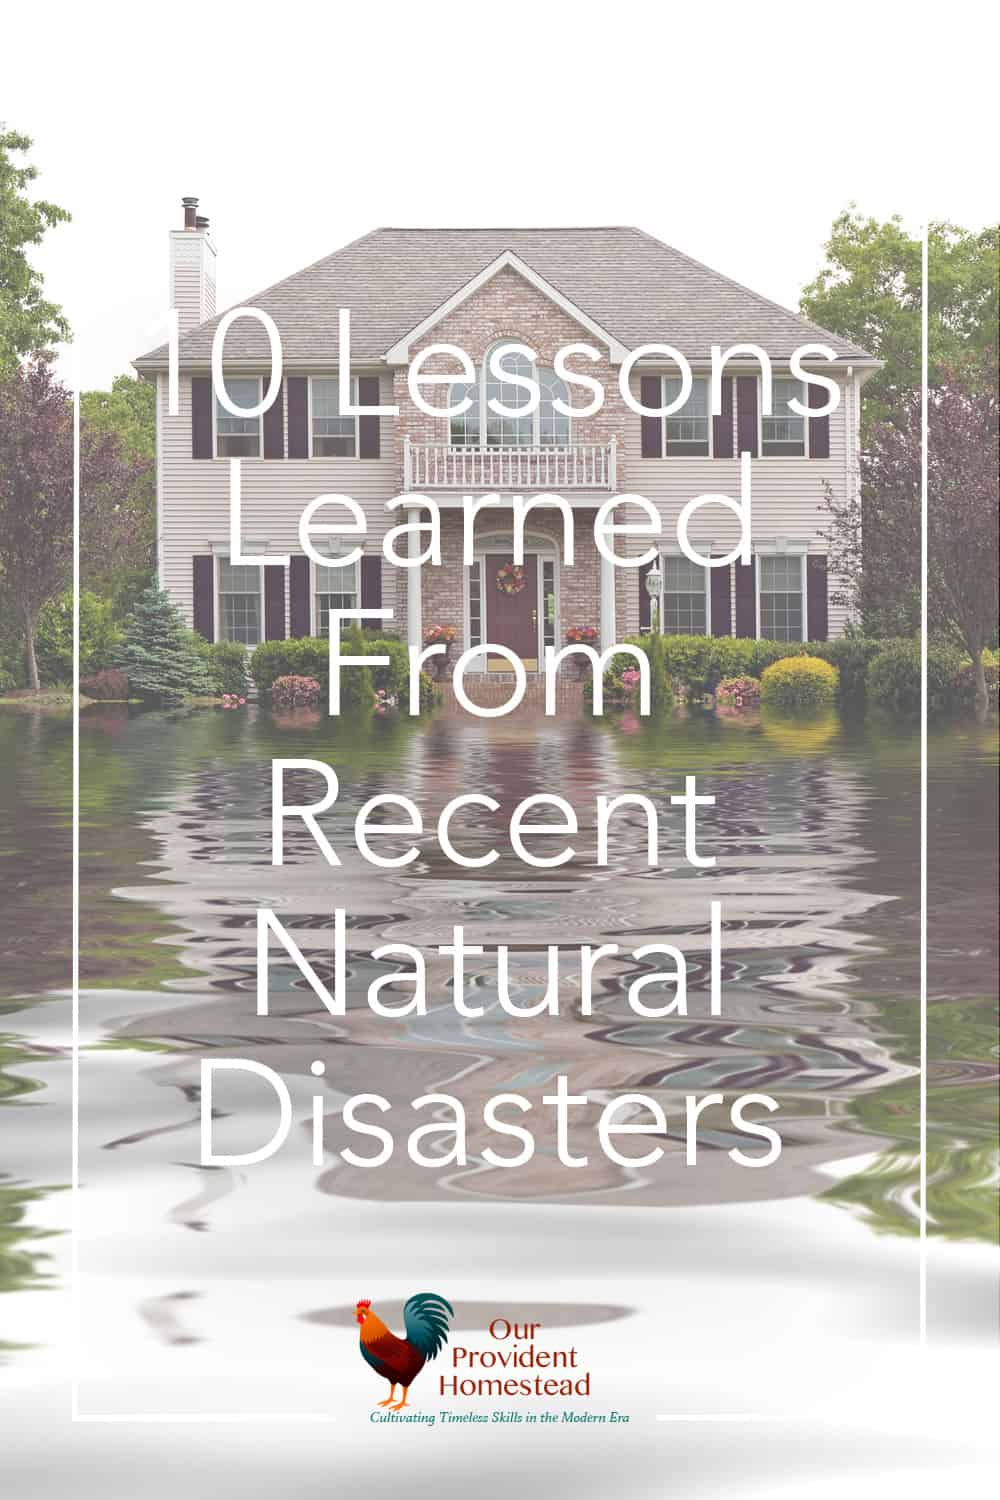 Do all of the natural disasters on the news scare you? Click here to see what you can do to protect your family for future emergencies. #emergencypreparedness #survivaltips #naturaldisasters